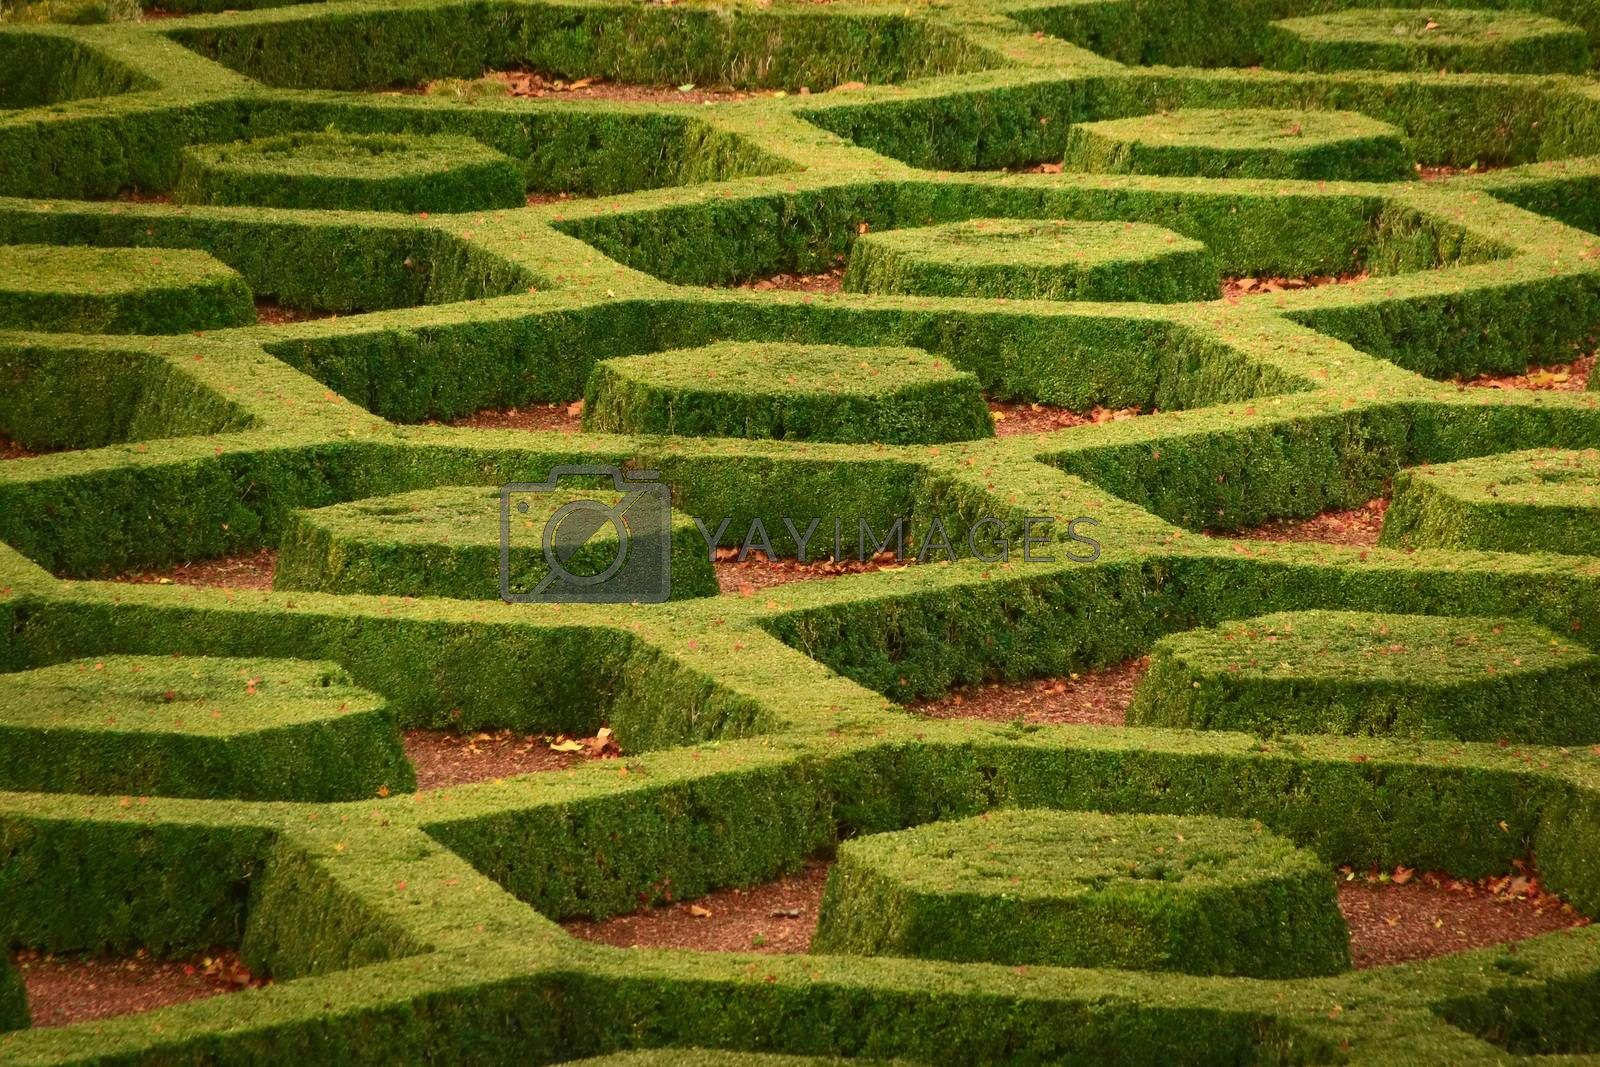 Royalty free image of Green, manicured privets in hexagonal patterns at the Botanical Garden of Brussels, Belgium. by hernan_hyper